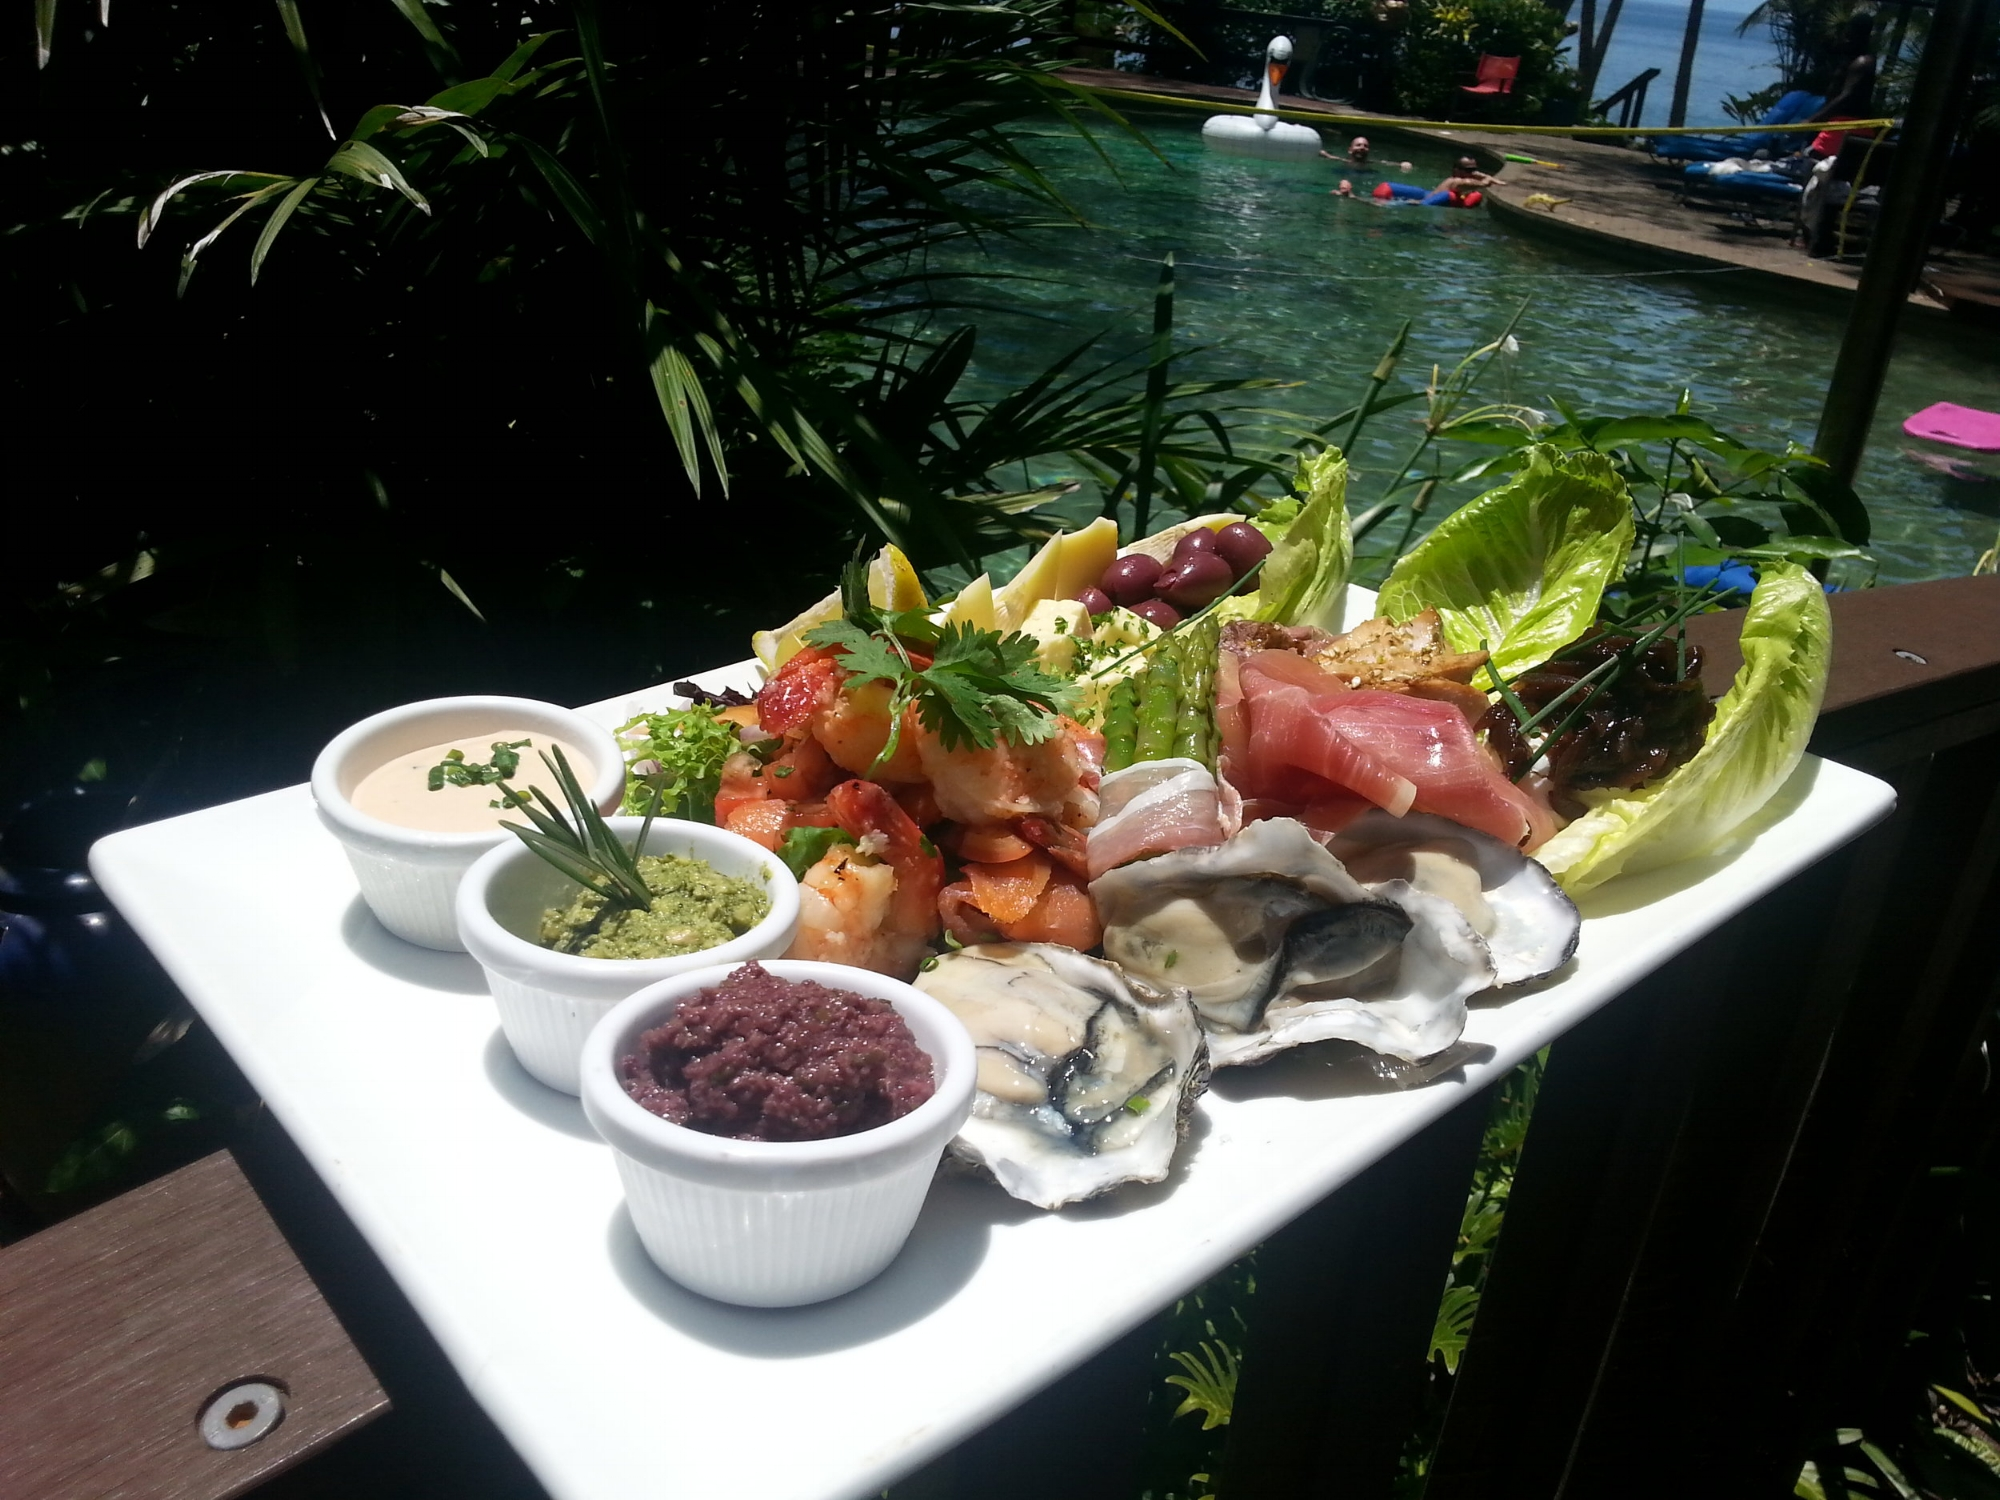 Poolside Lunch Platter by Chef John